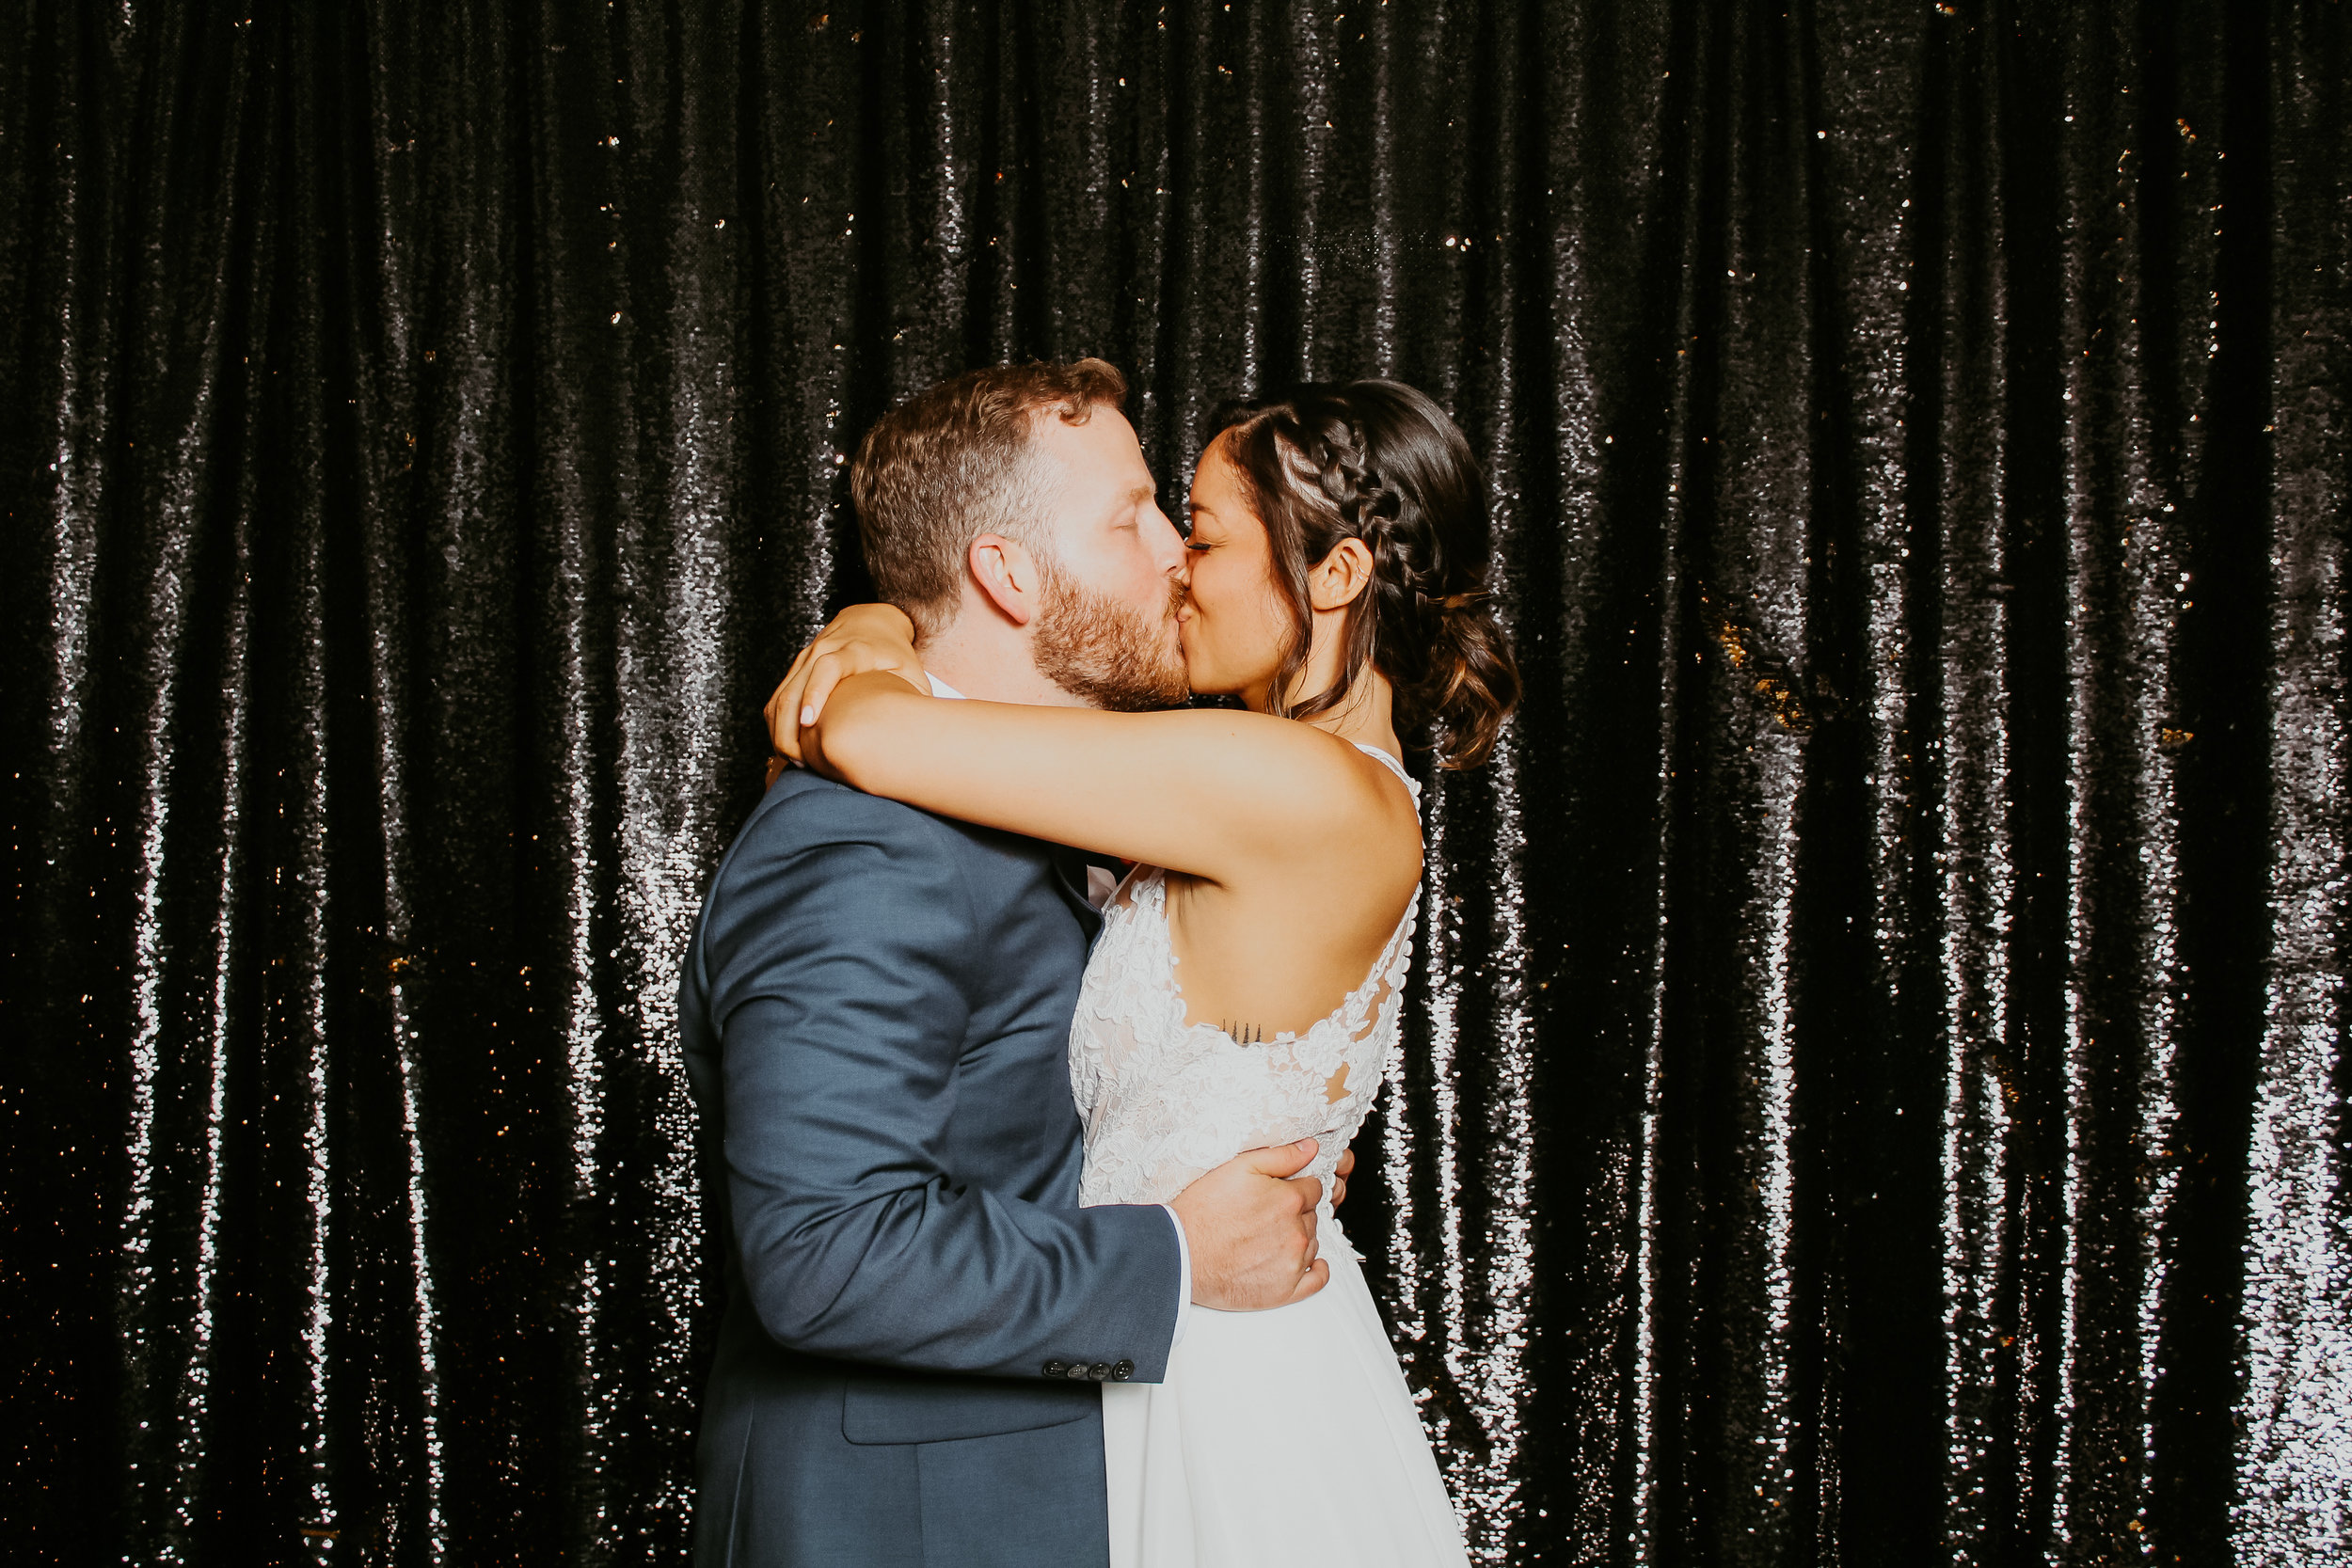 Wedding Photobooth Rental Orange County